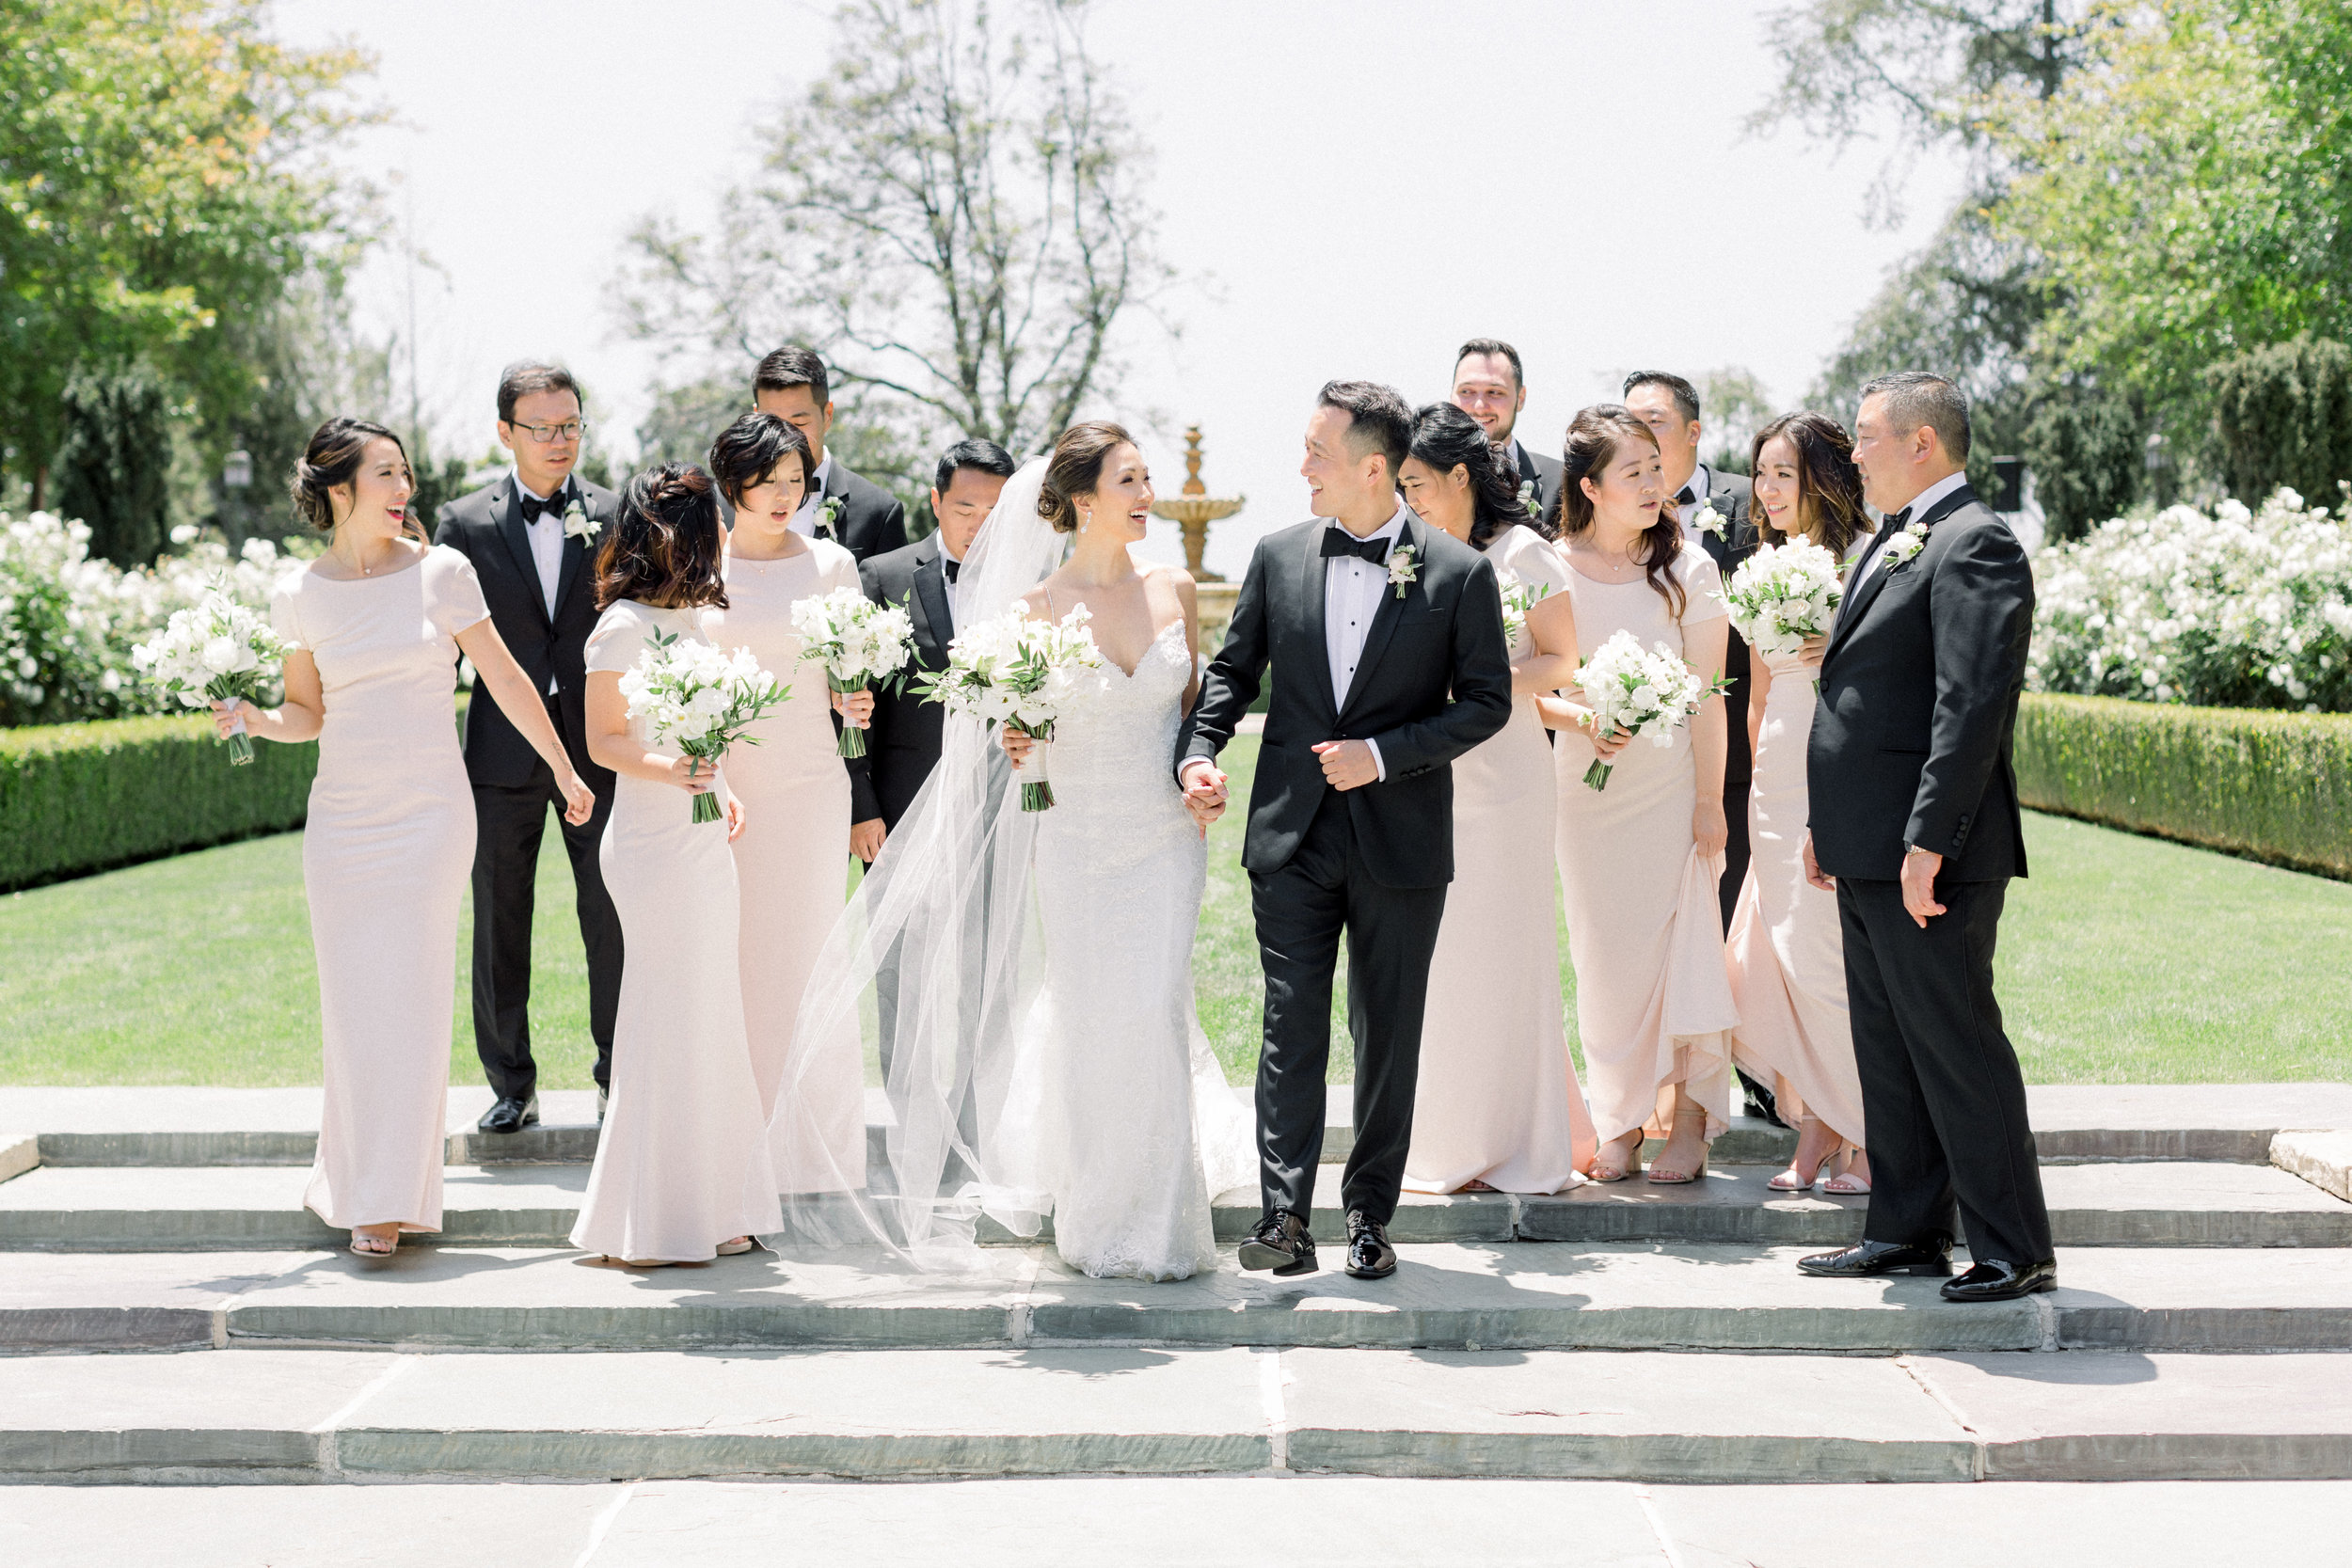 Greystone-Mansion-Wedding-Kristina-Adams-218.jpg